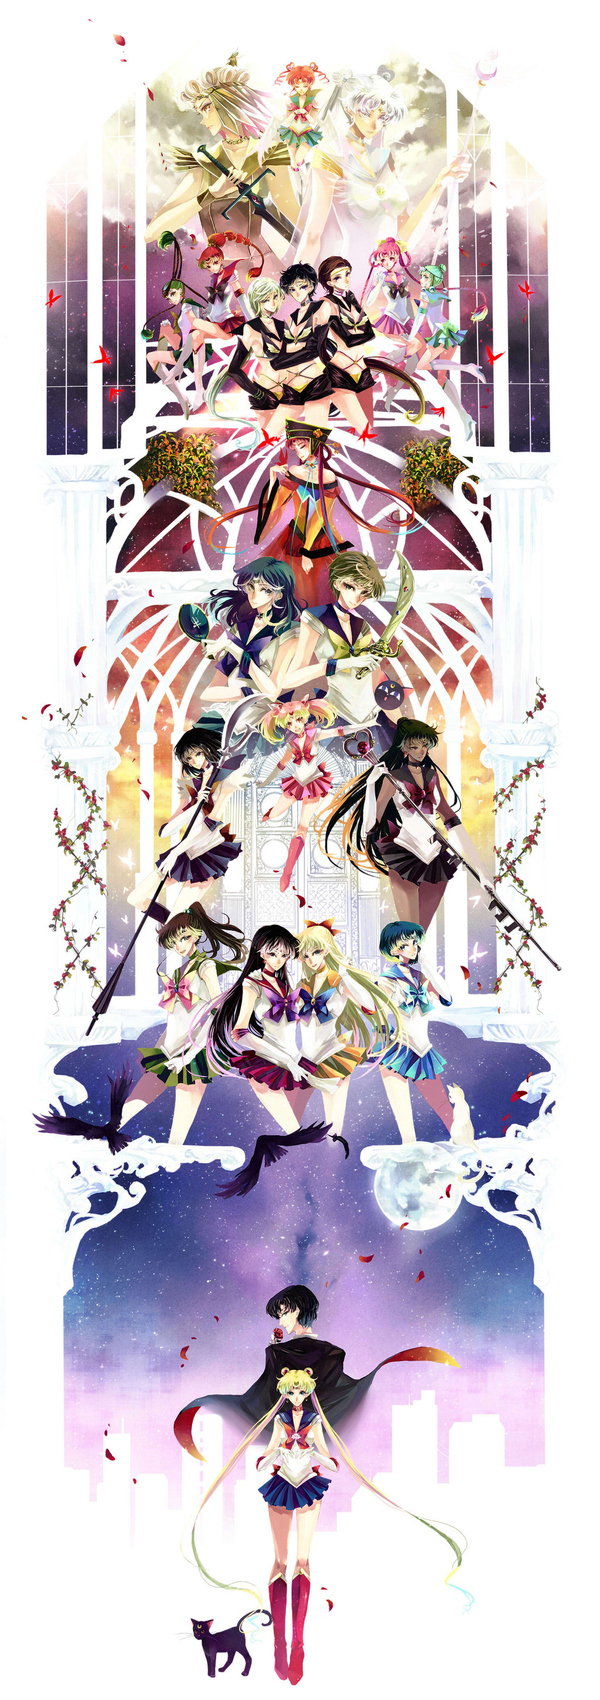 Super Pretty (And Very Large) Sailor Moon Art